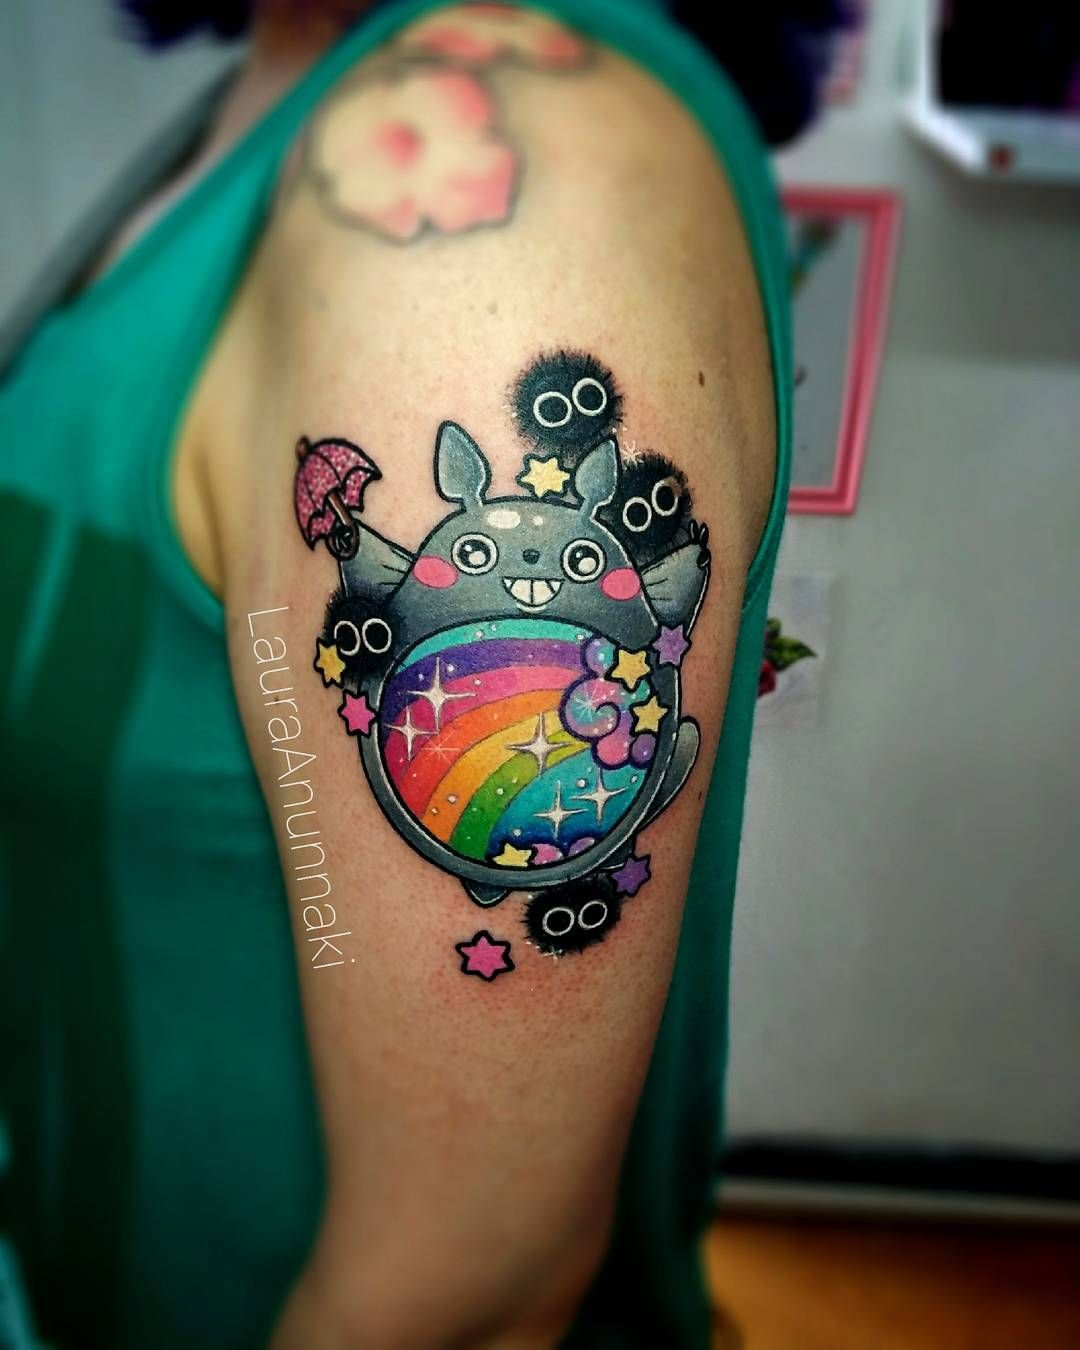 Pin By Laura Kuley On Tattoo: Pin By Donella Dowdle On Ink